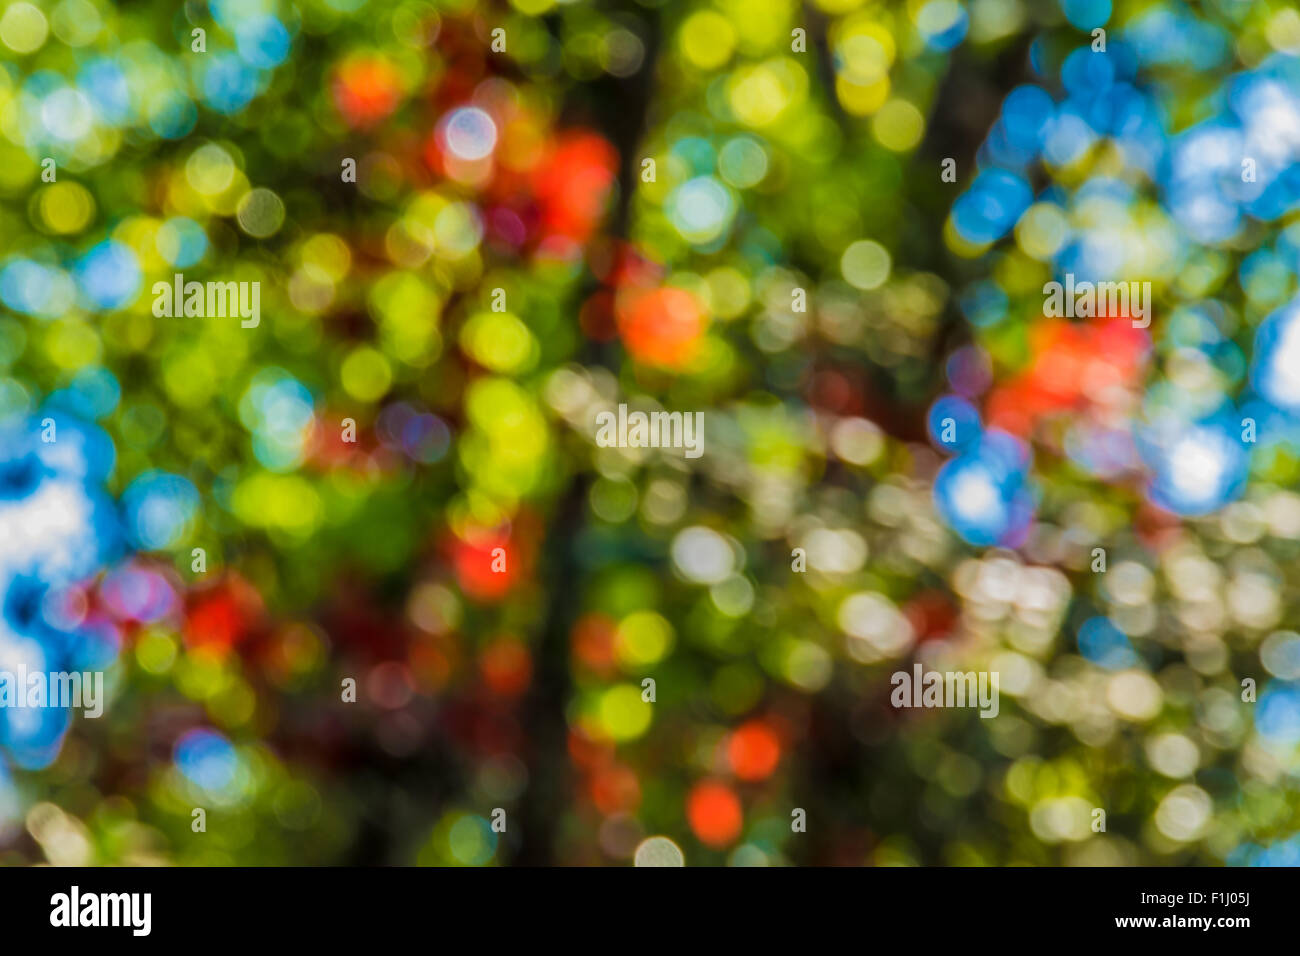 Soft focus photo of bright forest with sunlight, abstract natural background, blurred grunge image, - Stock Image